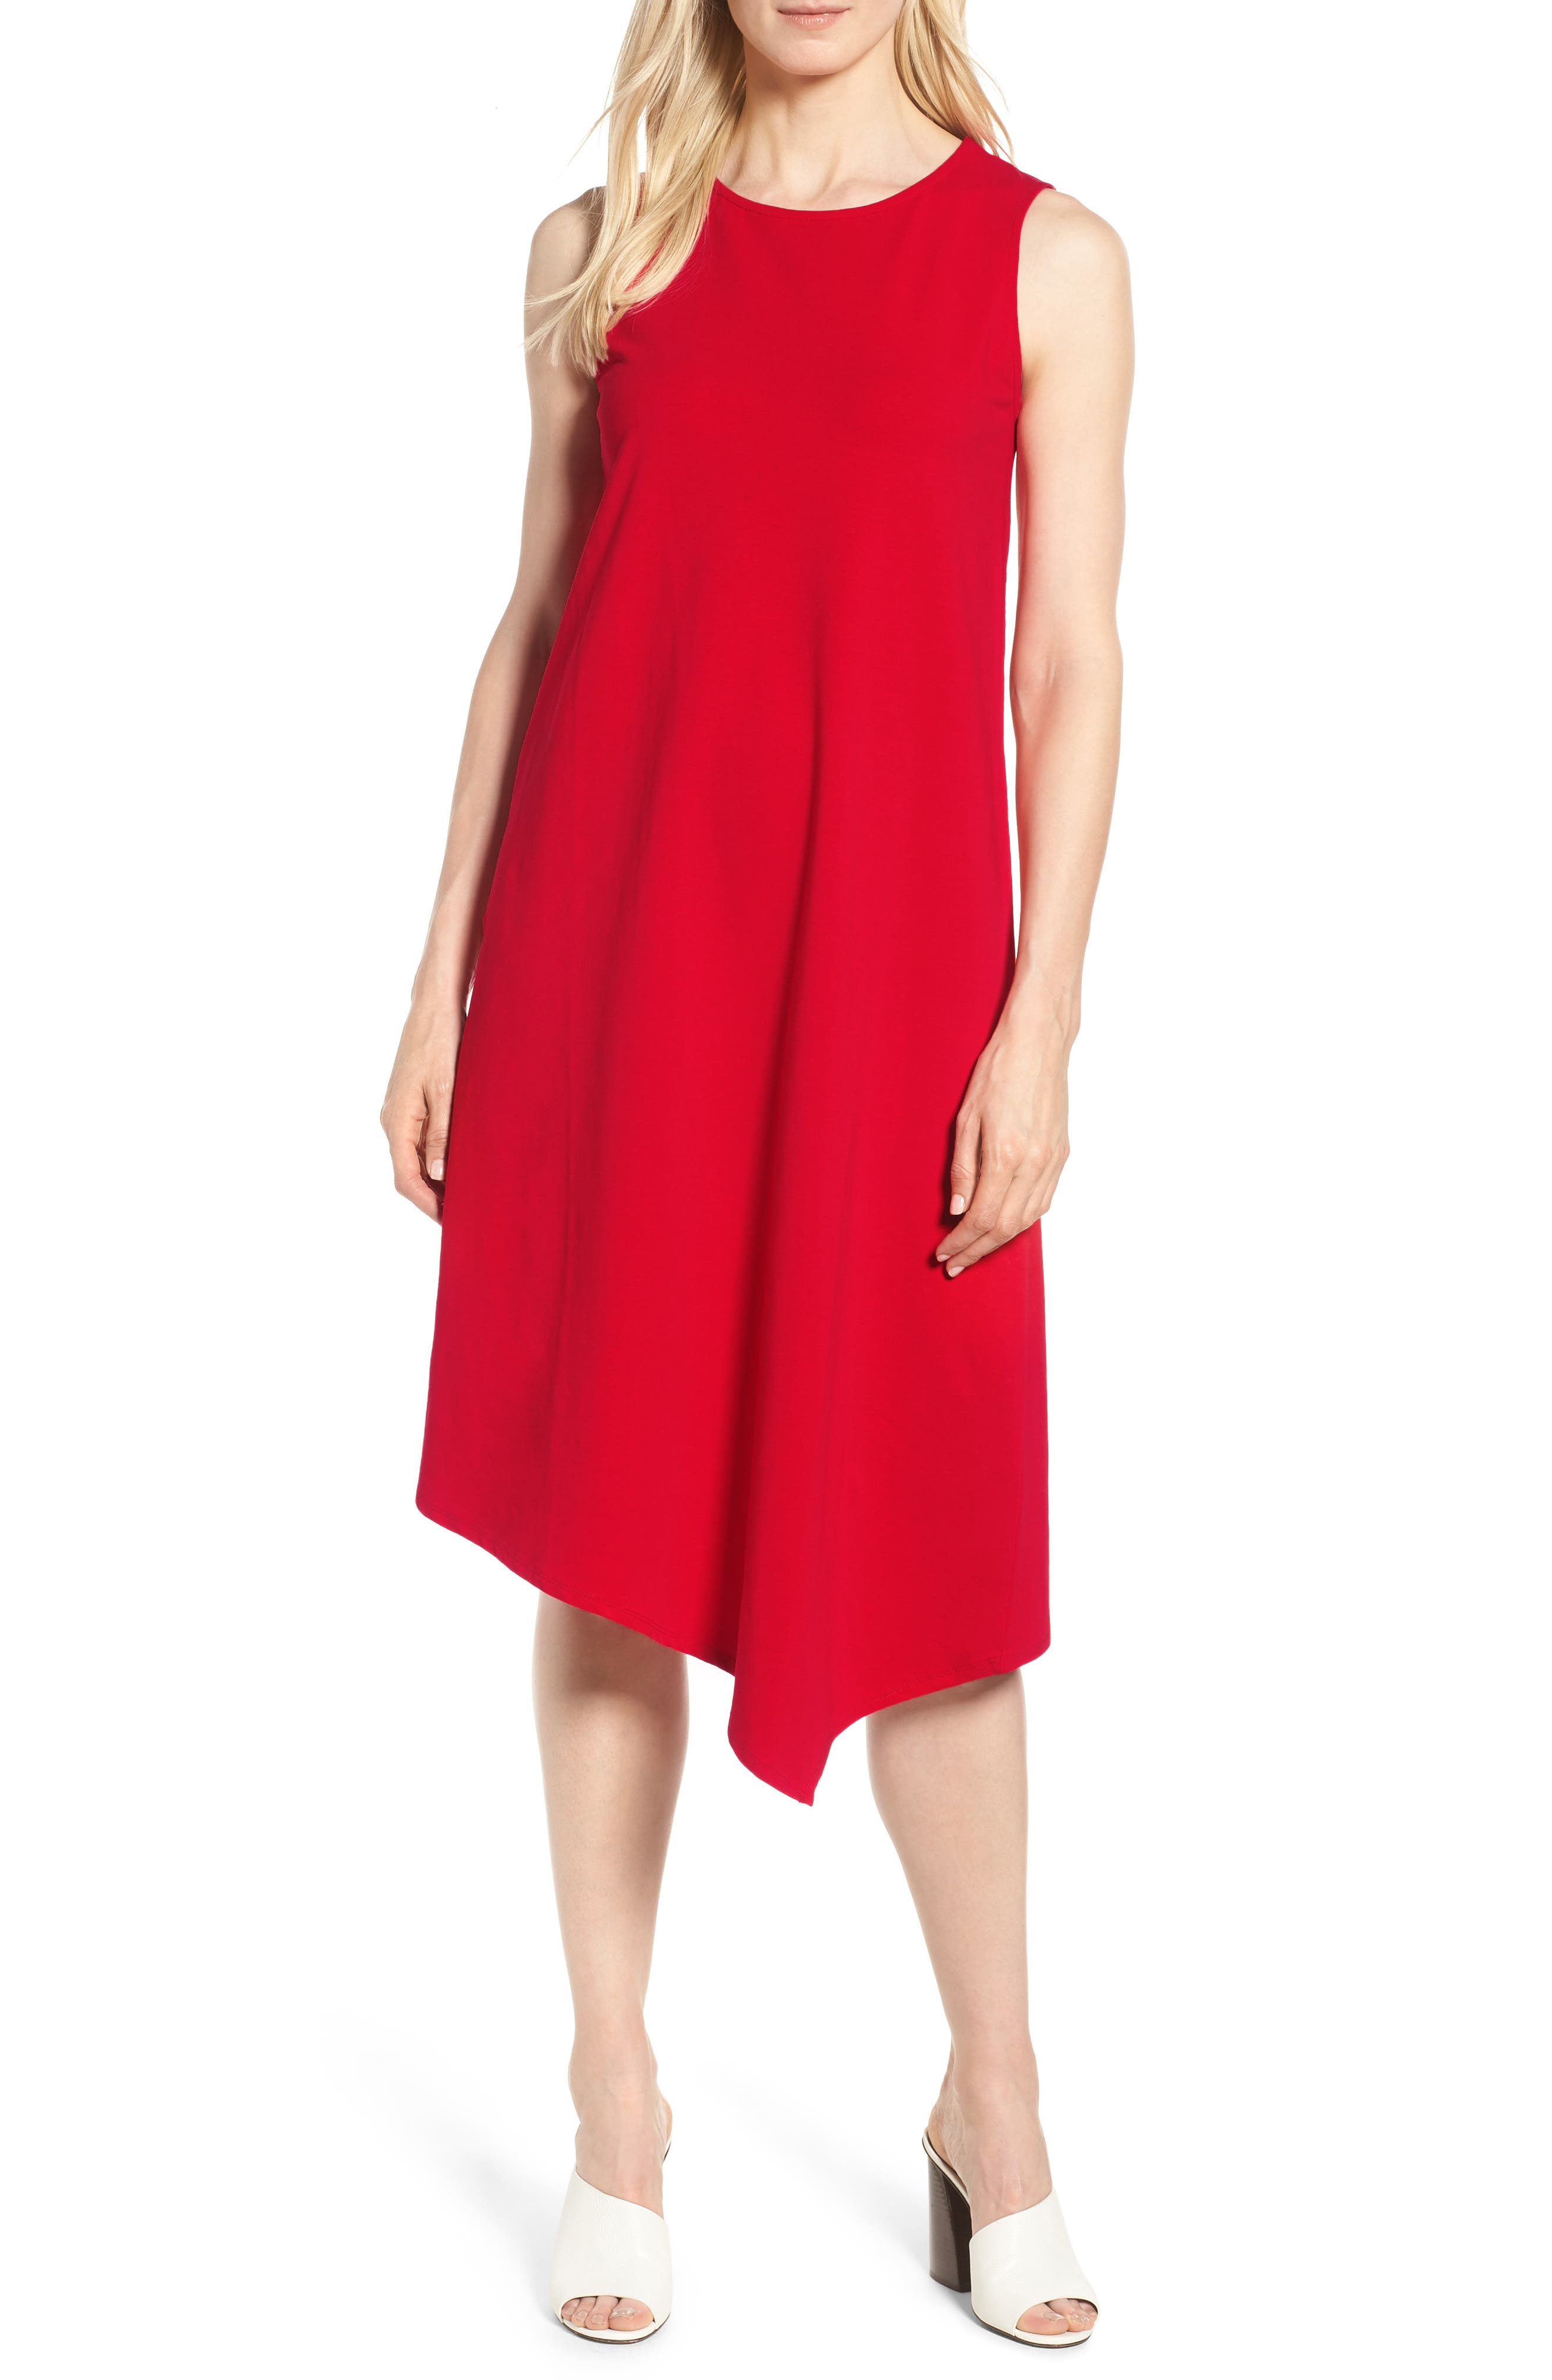 Sweet Escape Tank Dress,                         Main,                         color, Red Sangria